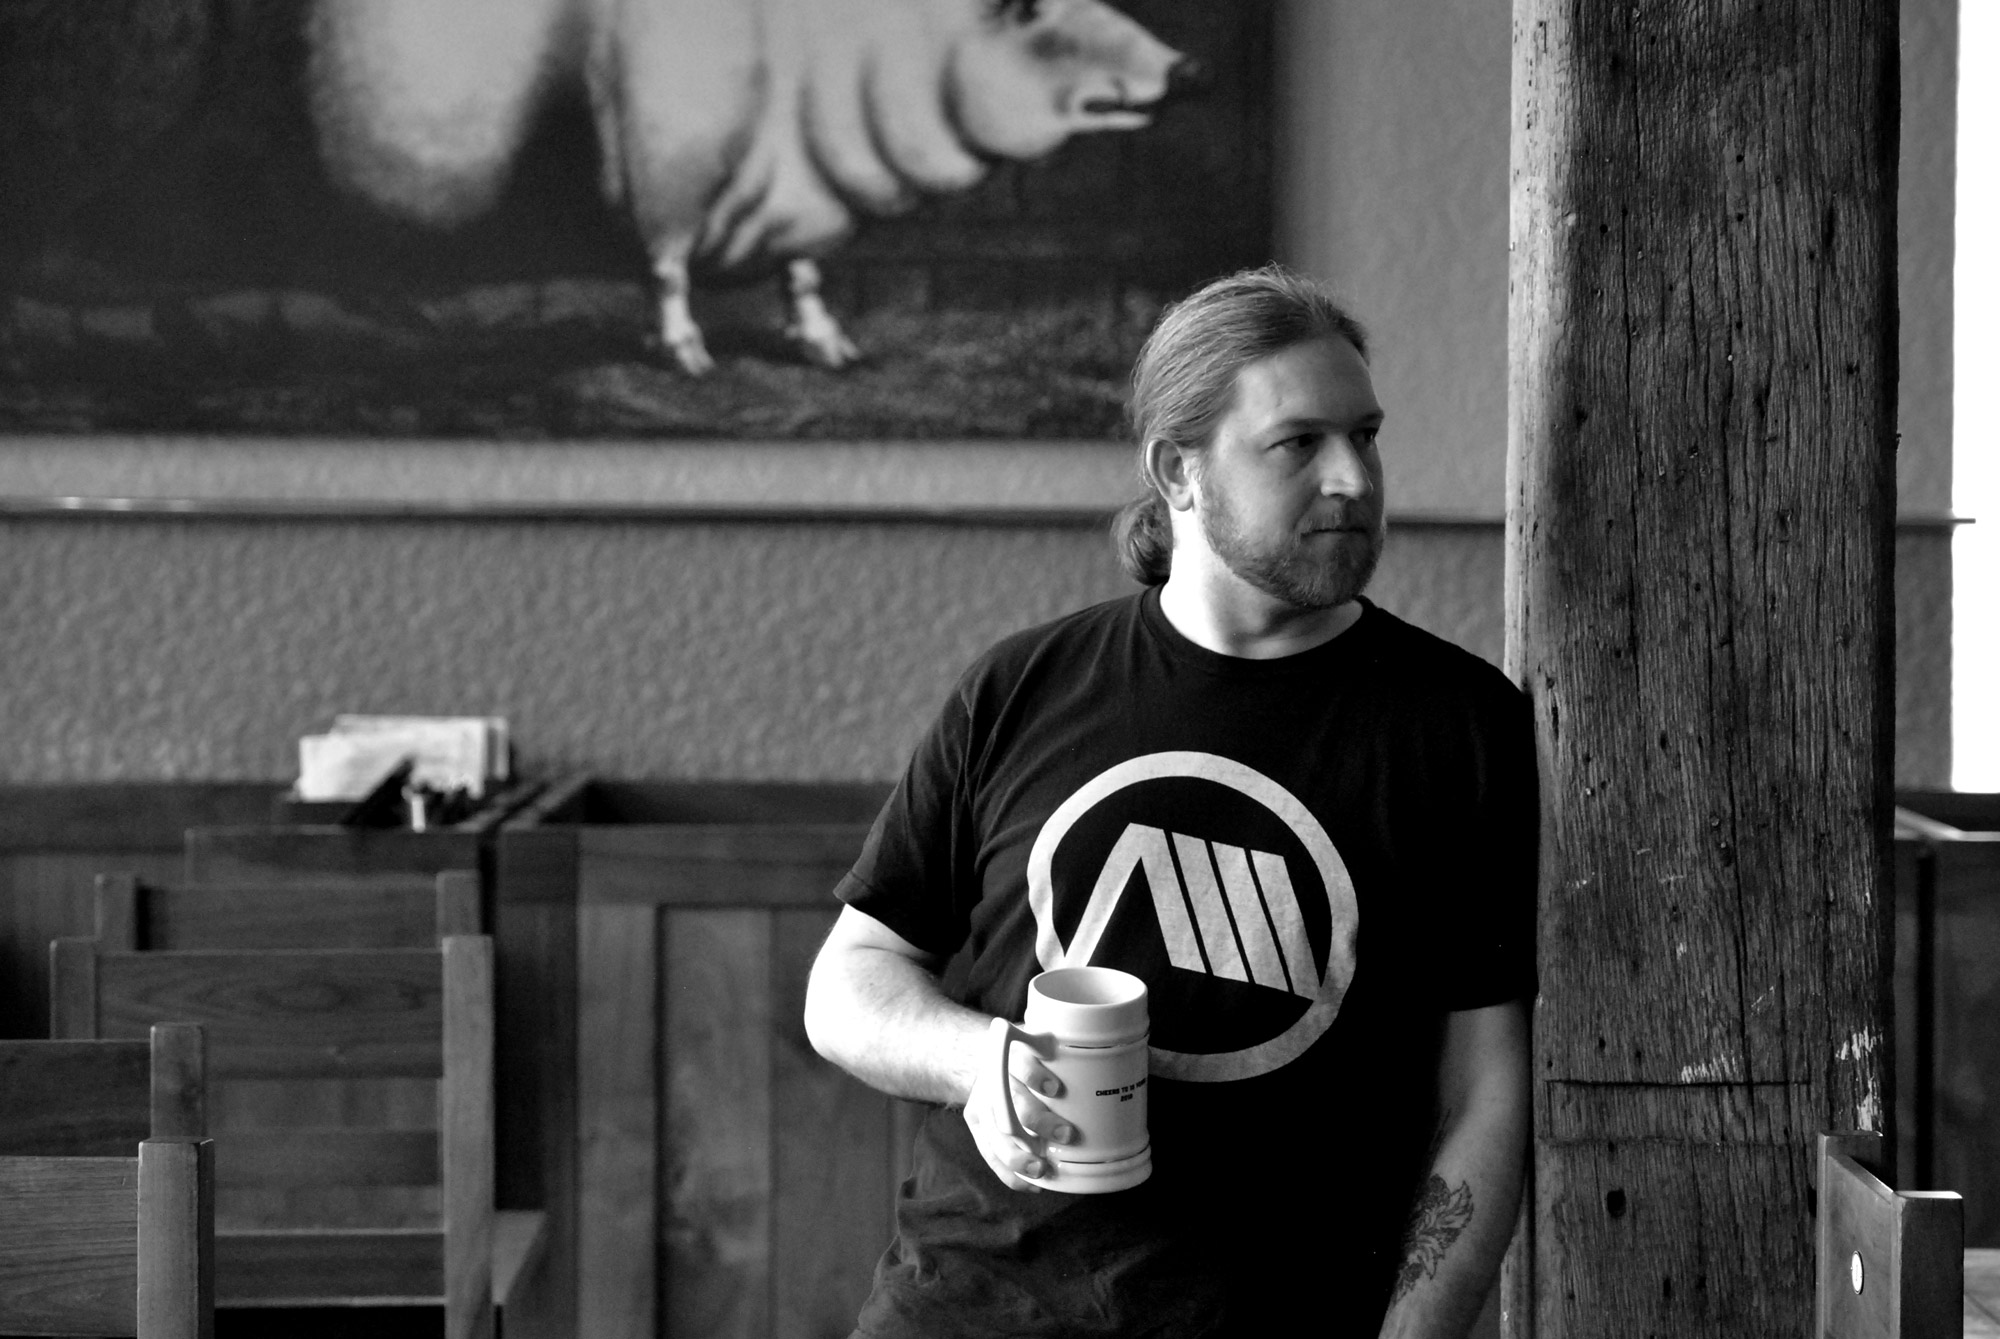 A Q&A with The Publican's Adam Vavrick